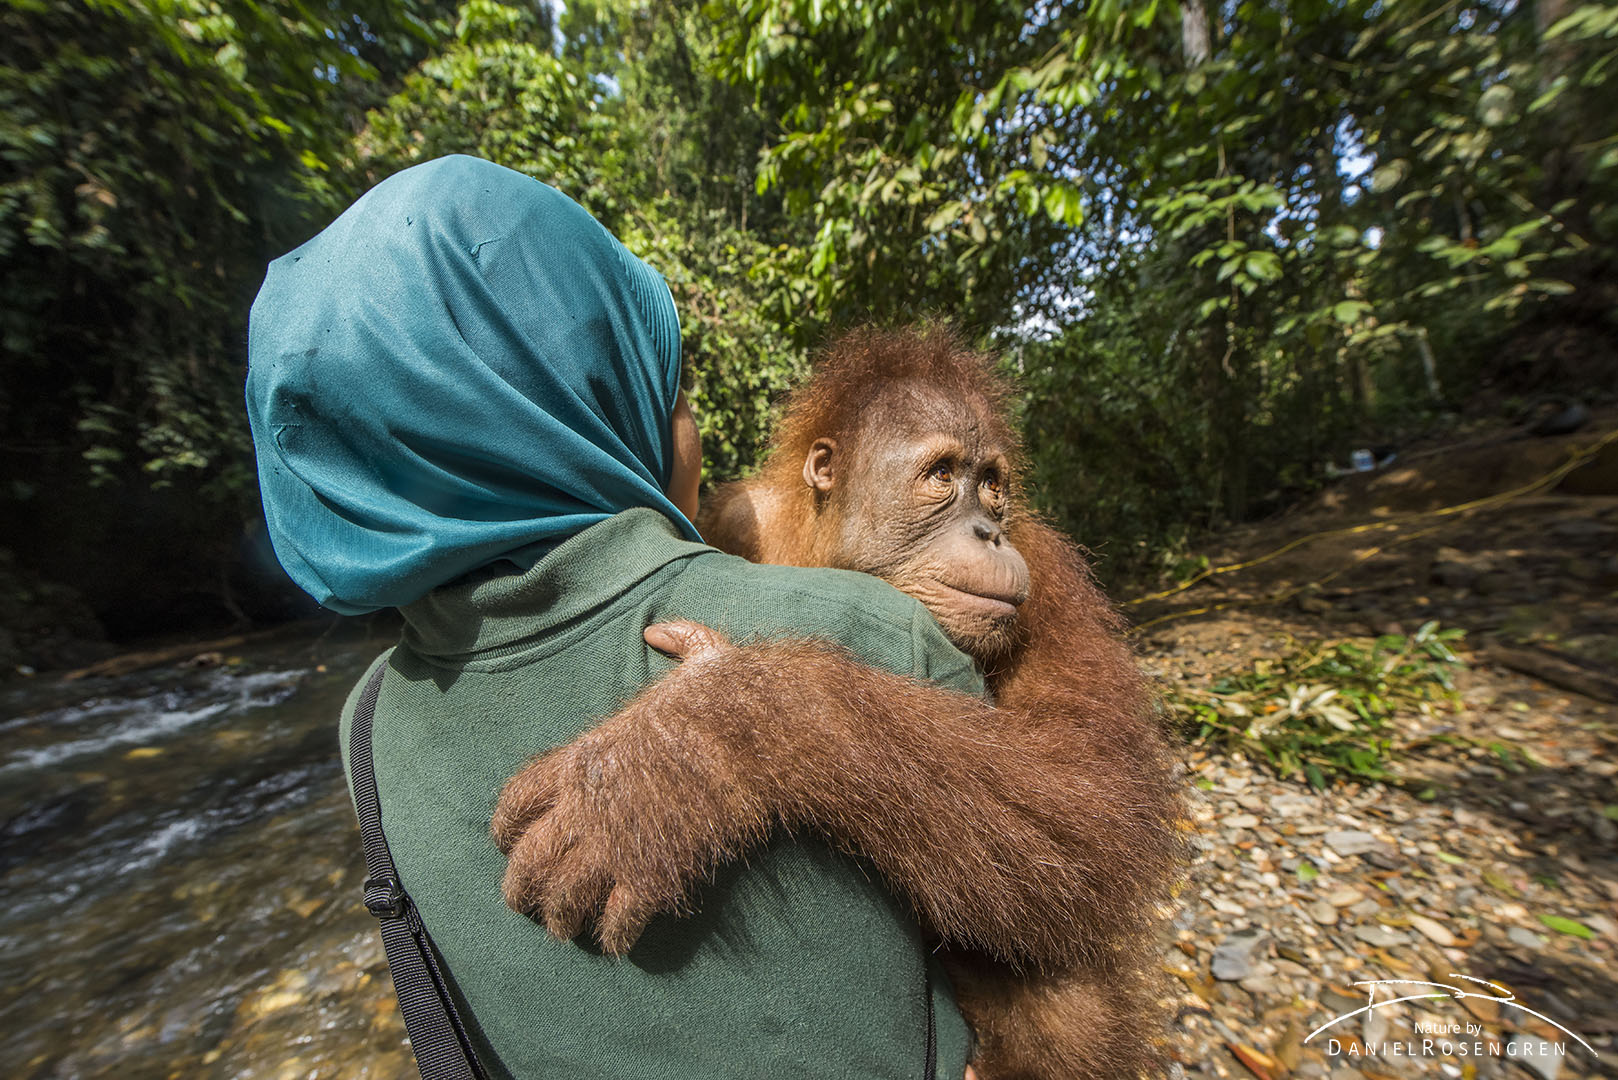 A young orangutan (Kedaung) carried out by trainer Siti Fatimazzahra to jungle school. Before being released, orangutans need to learn several skills so they can survive better. © Daniel Rosengren